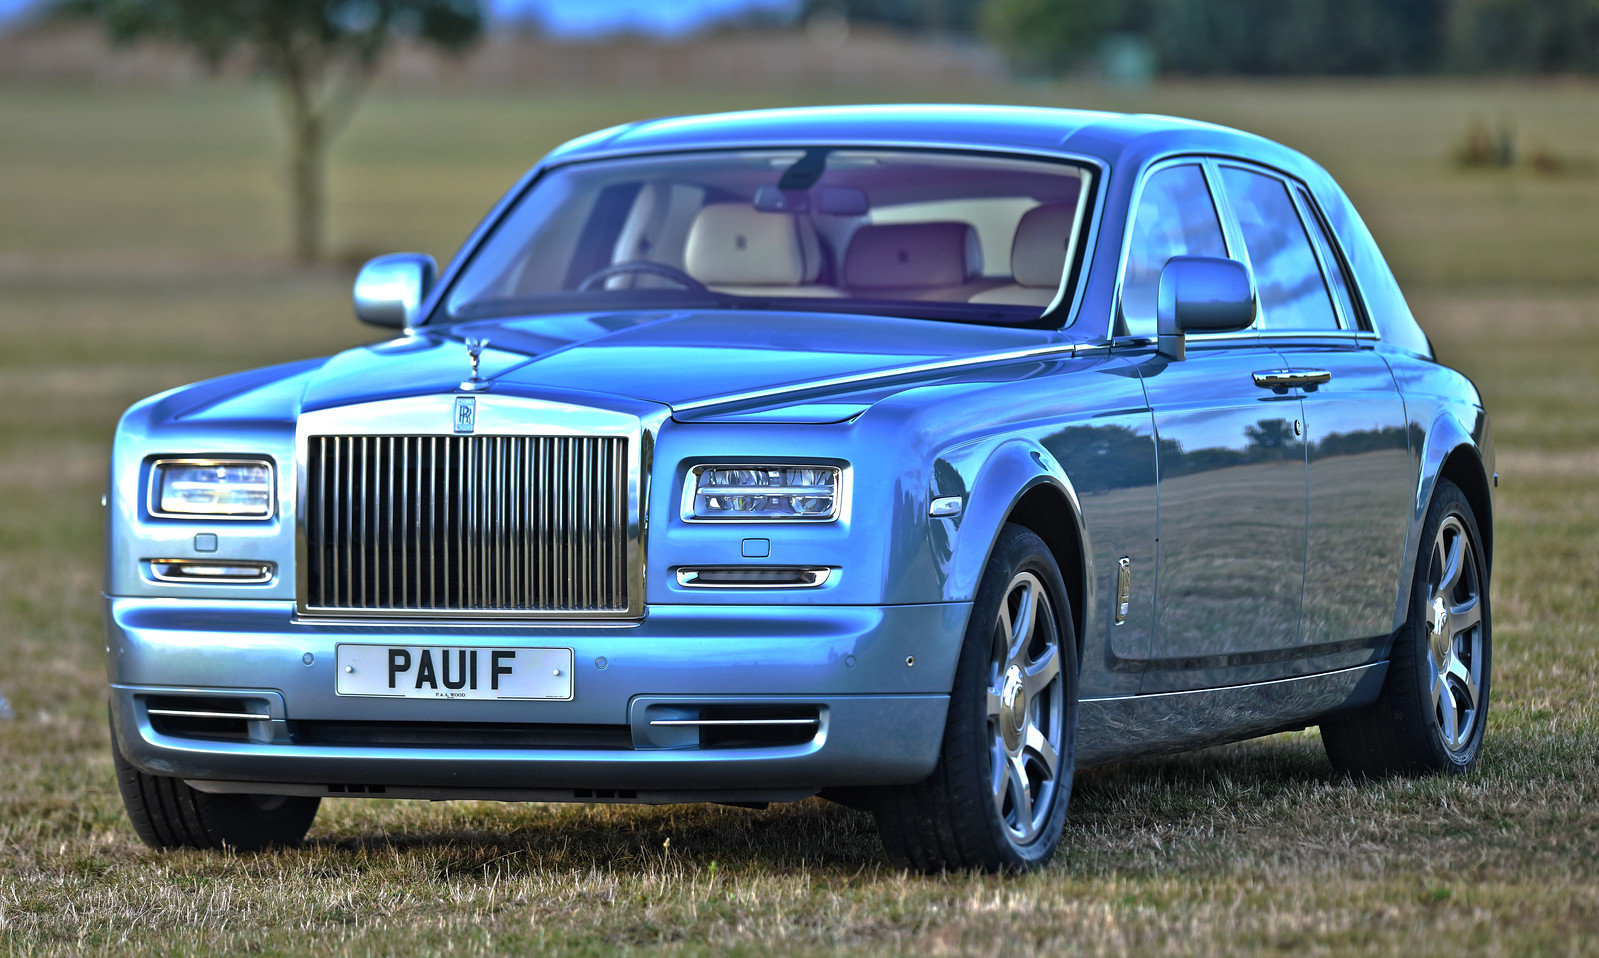 2016 Rolls Royce Phantom 7 For Sale (picture 1 of 6)